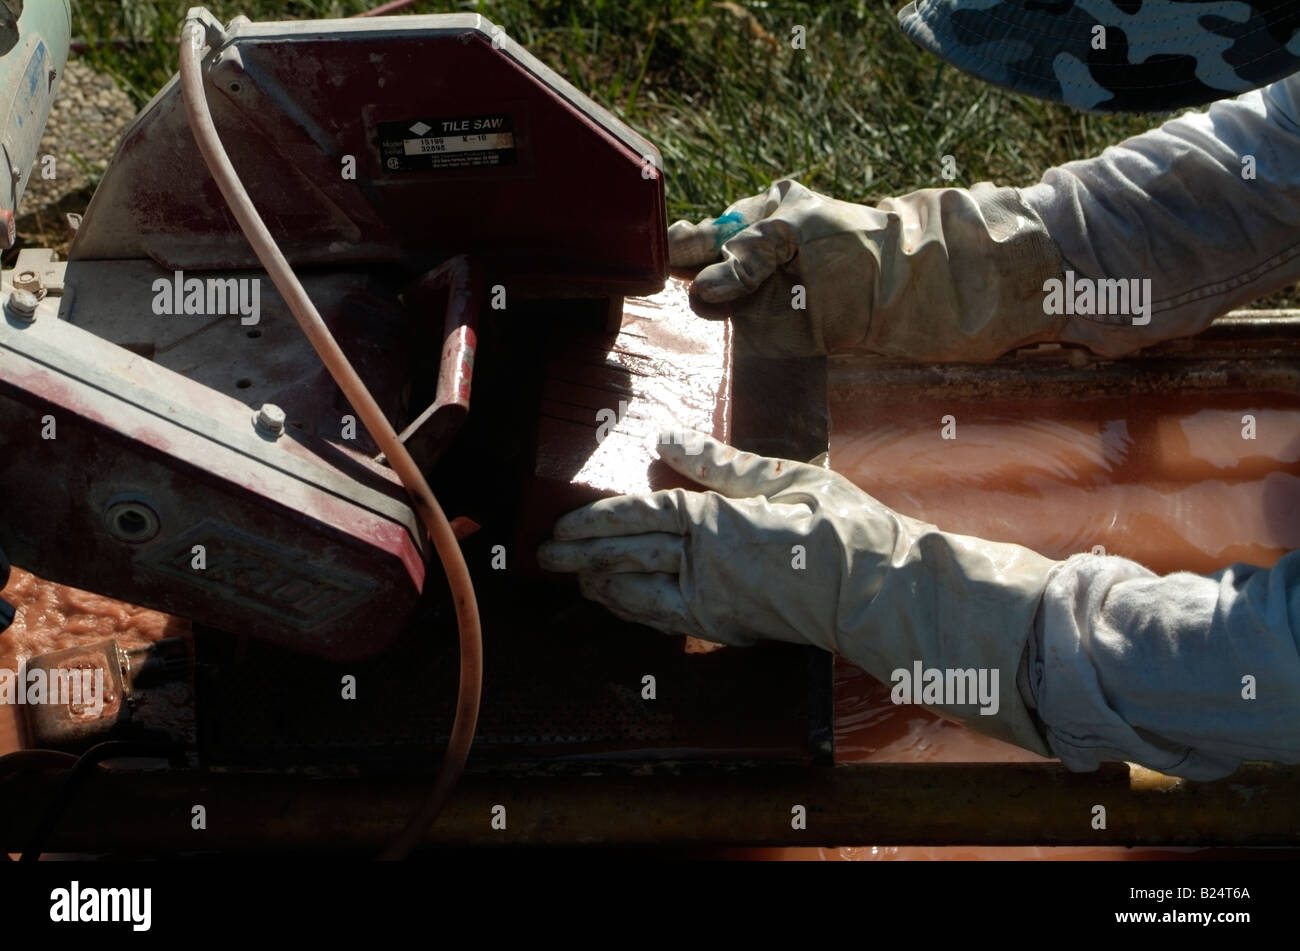 Stone Mason cuts a red clay brick with an Electic Tile Saw in San Jose, CA. Stock Photo